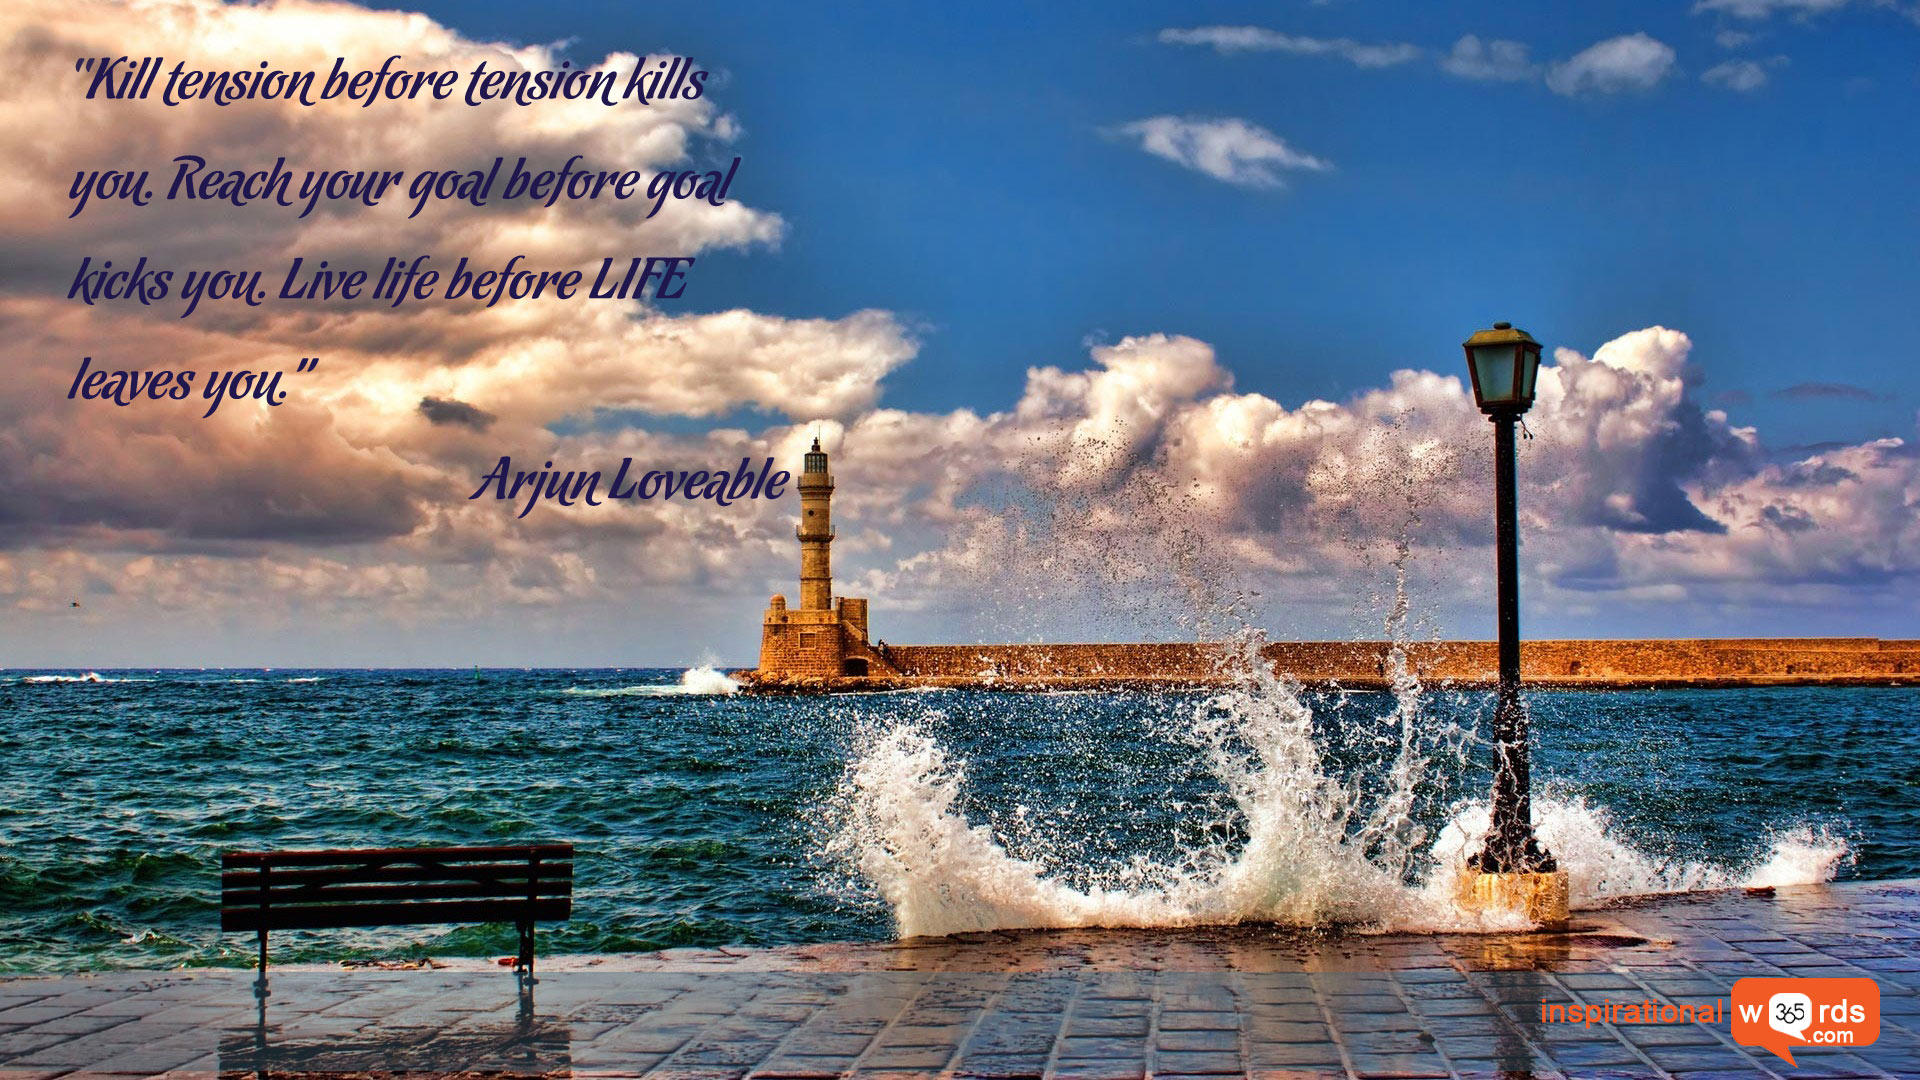 Inspirational Wallpaper Quote by Arjun Loveable